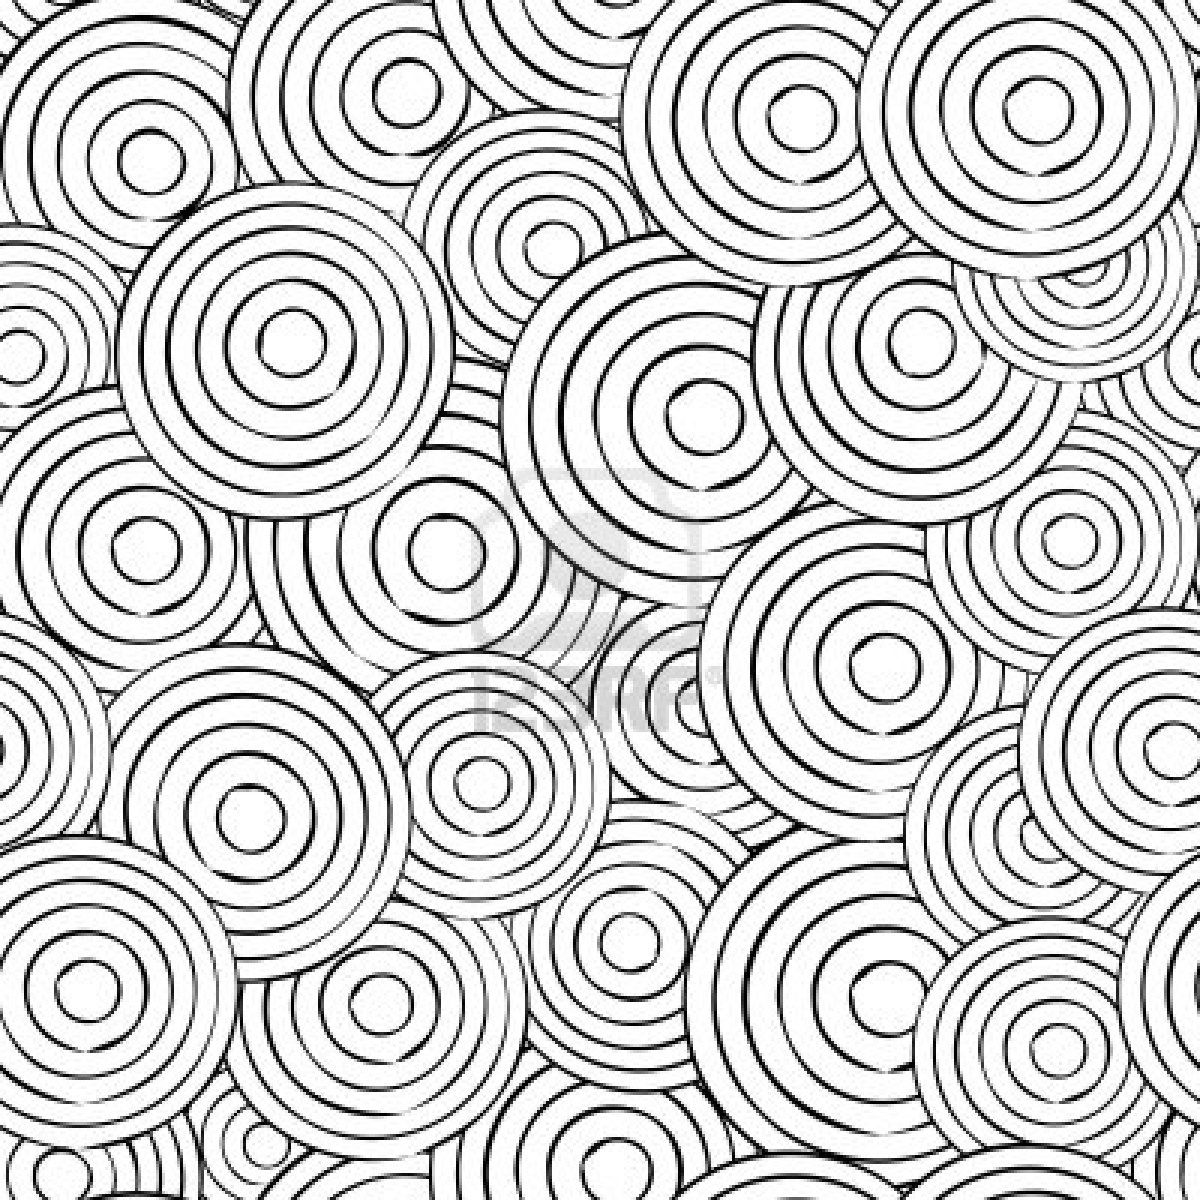 1200x1200 Awesome General Geometric Pattern Coloring Pages For Adults Image